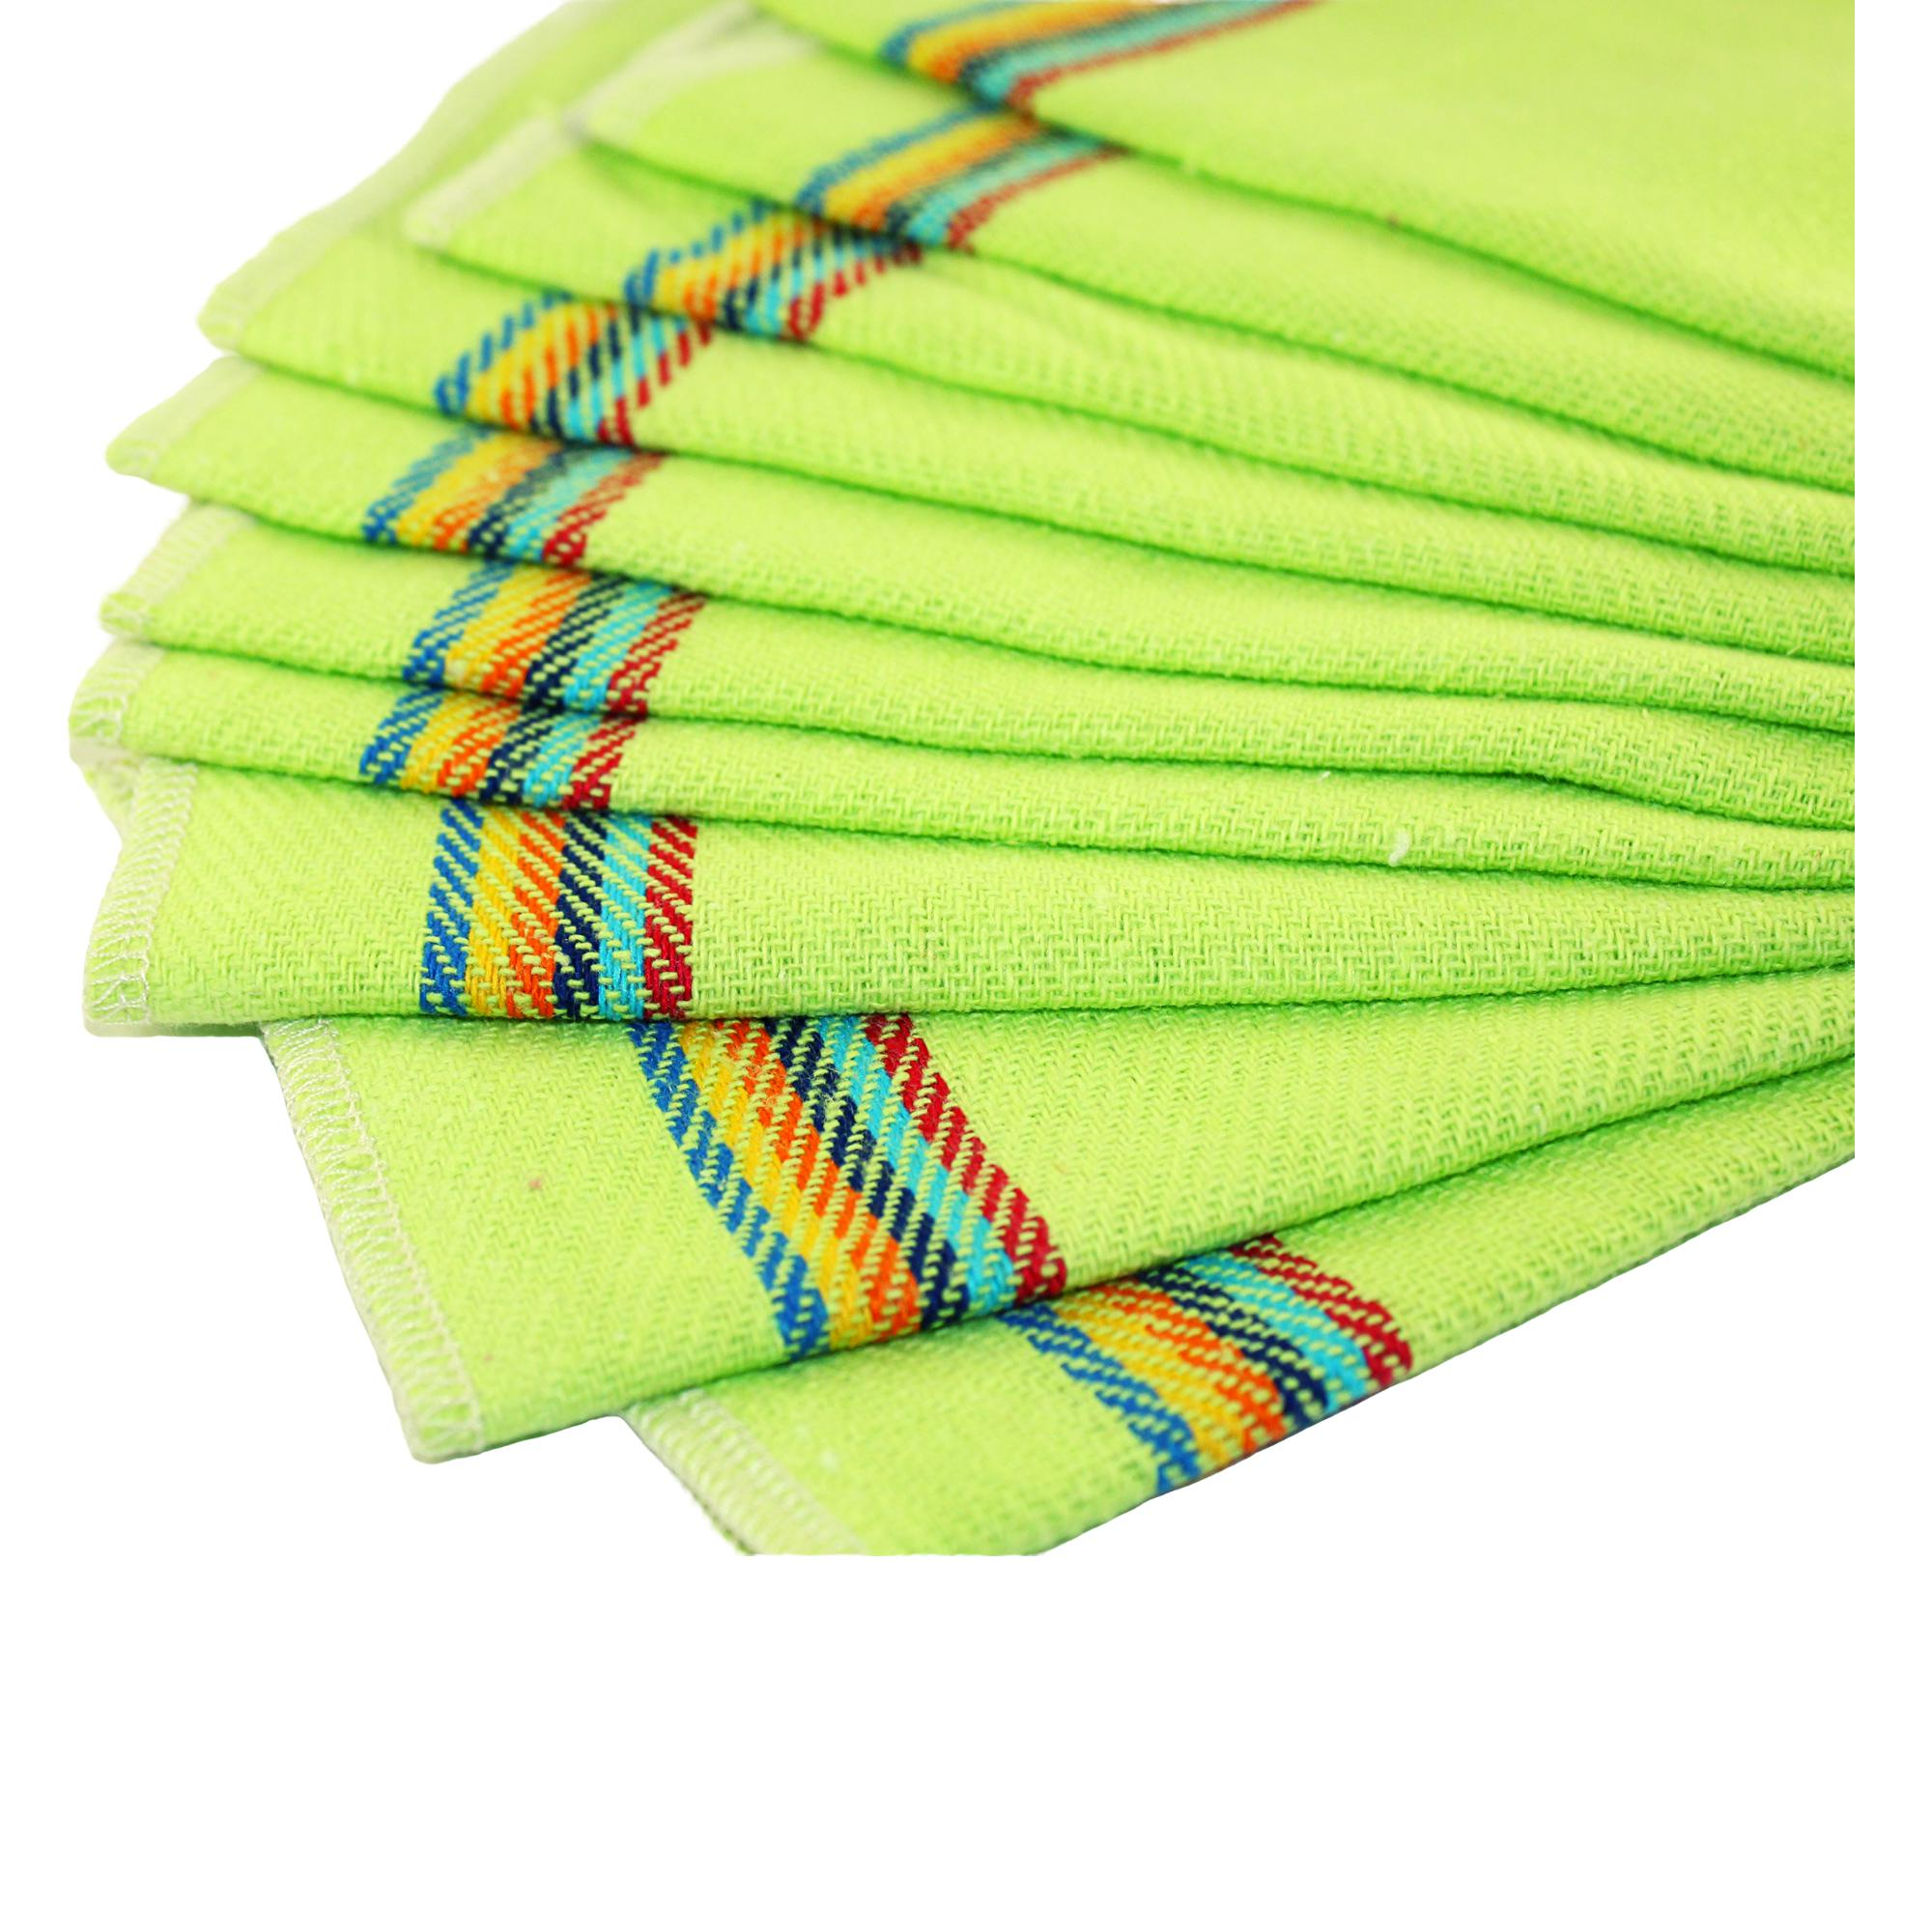 Reusable eco friendly Unpaper Towels 9x11 Inches, set of 10, Bright Green paperless kitchen, Green Living